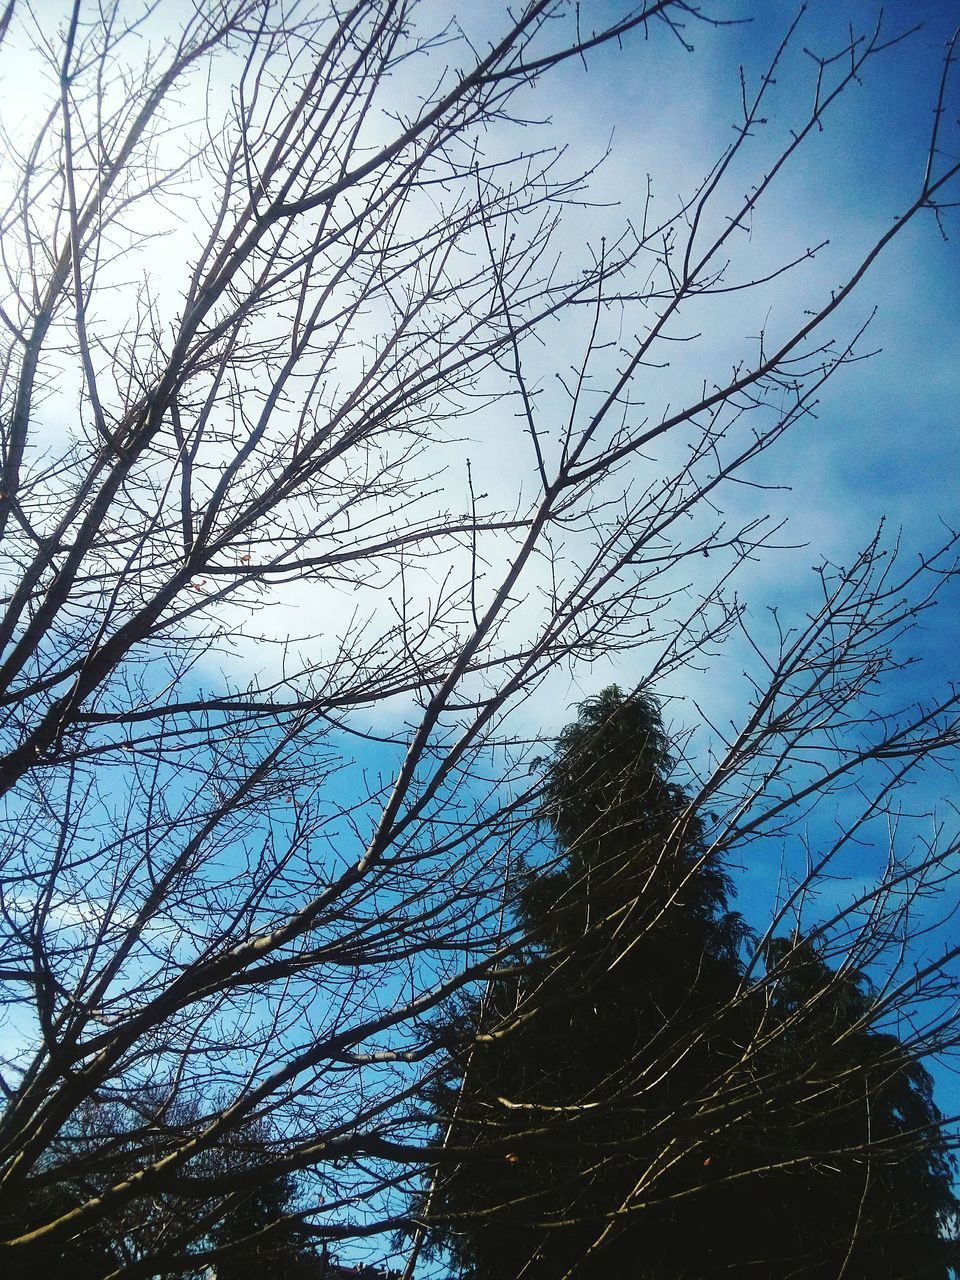 tree, bare tree, nature, sky, real people, low angle view, outdoors, day, tranquility, branch, winter, one person, beauty in nature, standing, scenics, people